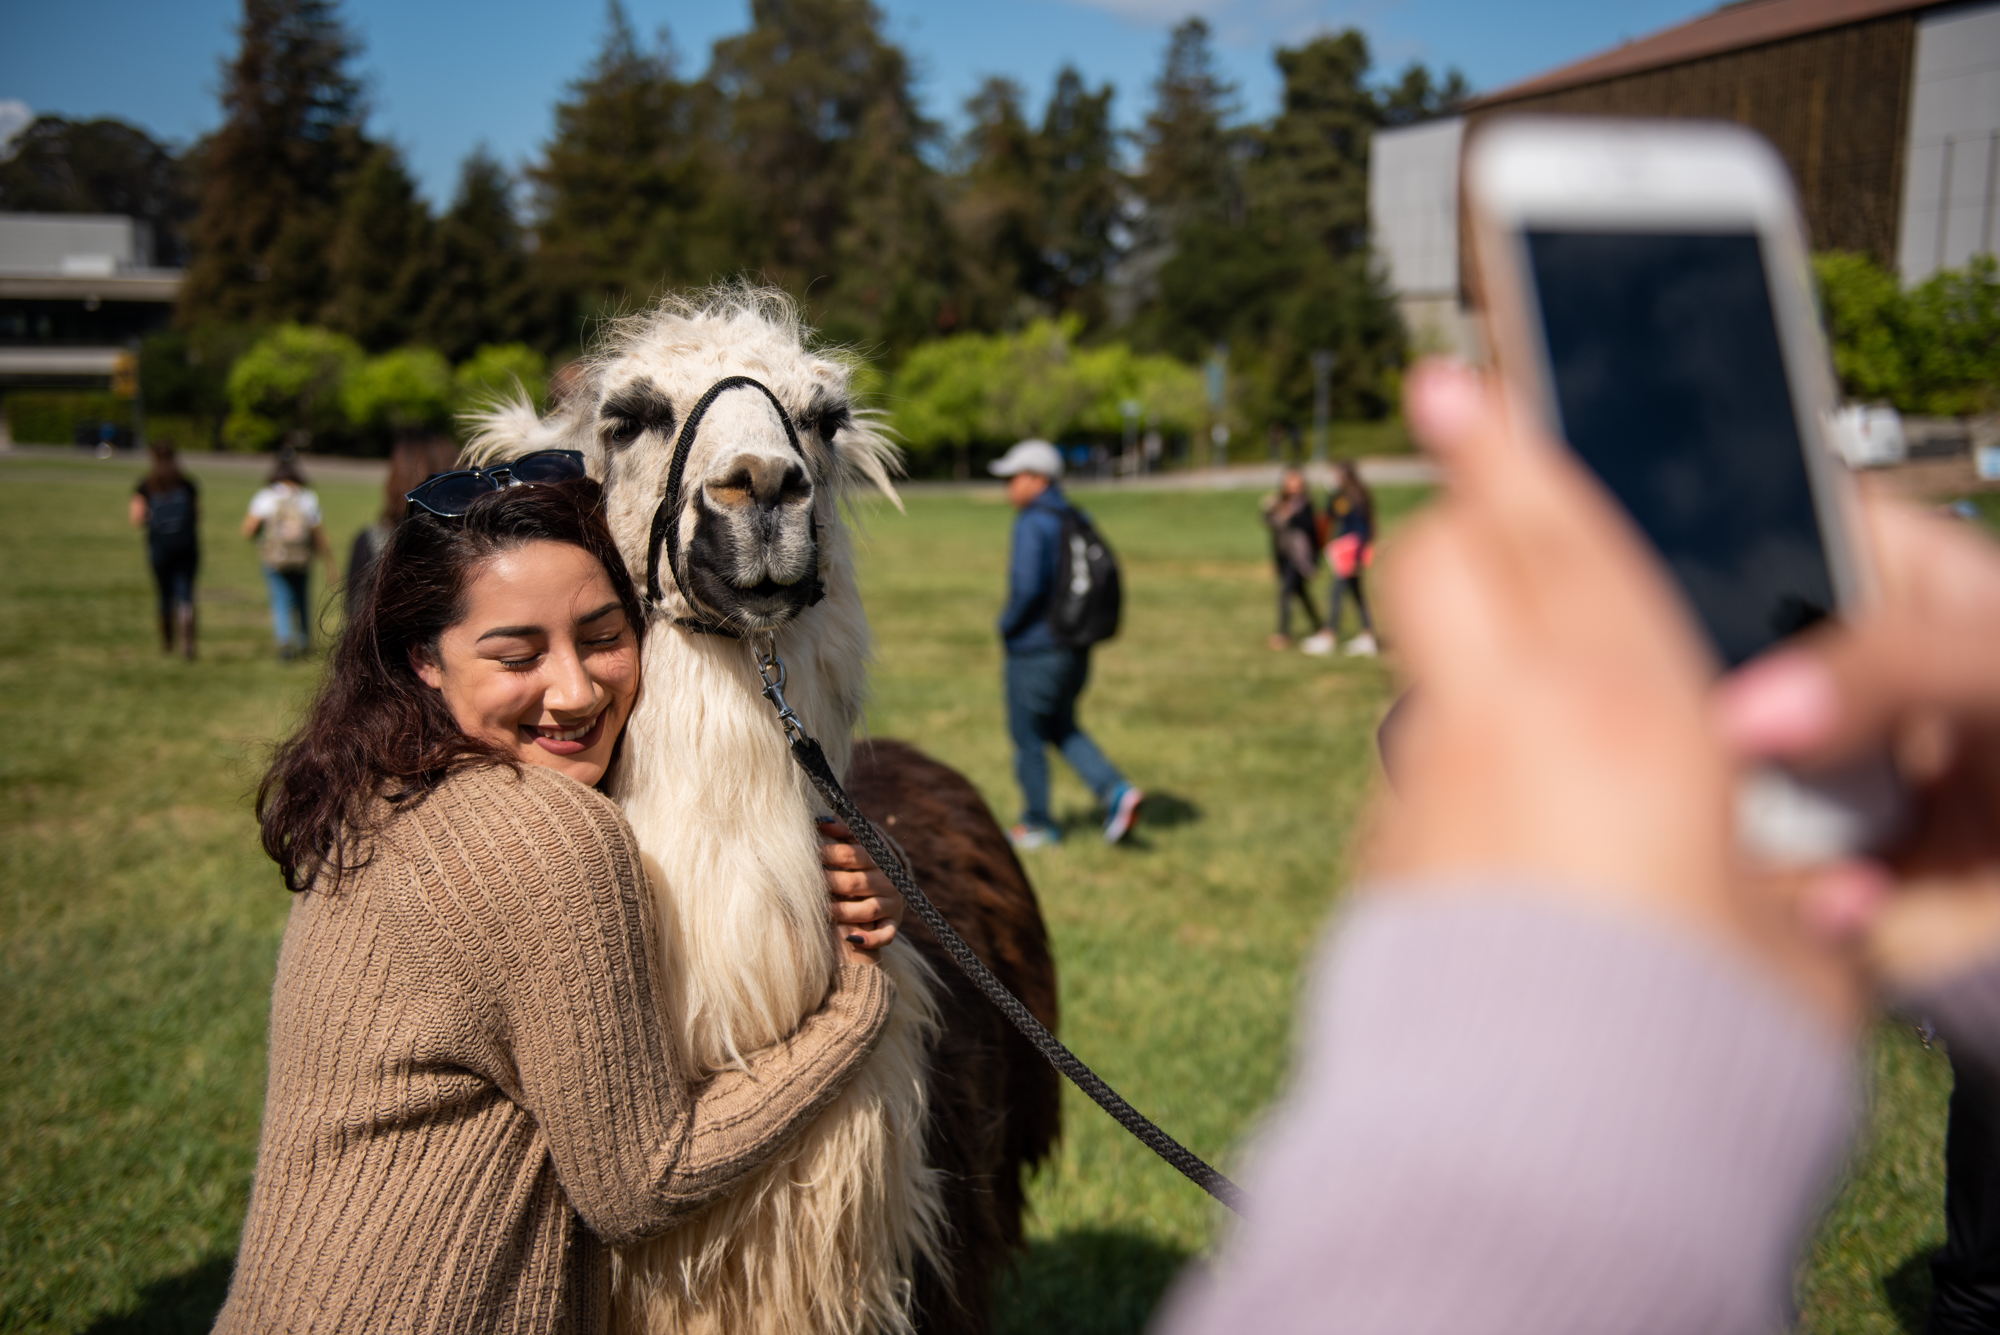 Junior Karen Gutierrez hugs Tambo the llama at UC Berkeley to help ease stress before final exams on Friday, April 27, 2018. | Rosa Furneaux, Special To The Chronicle